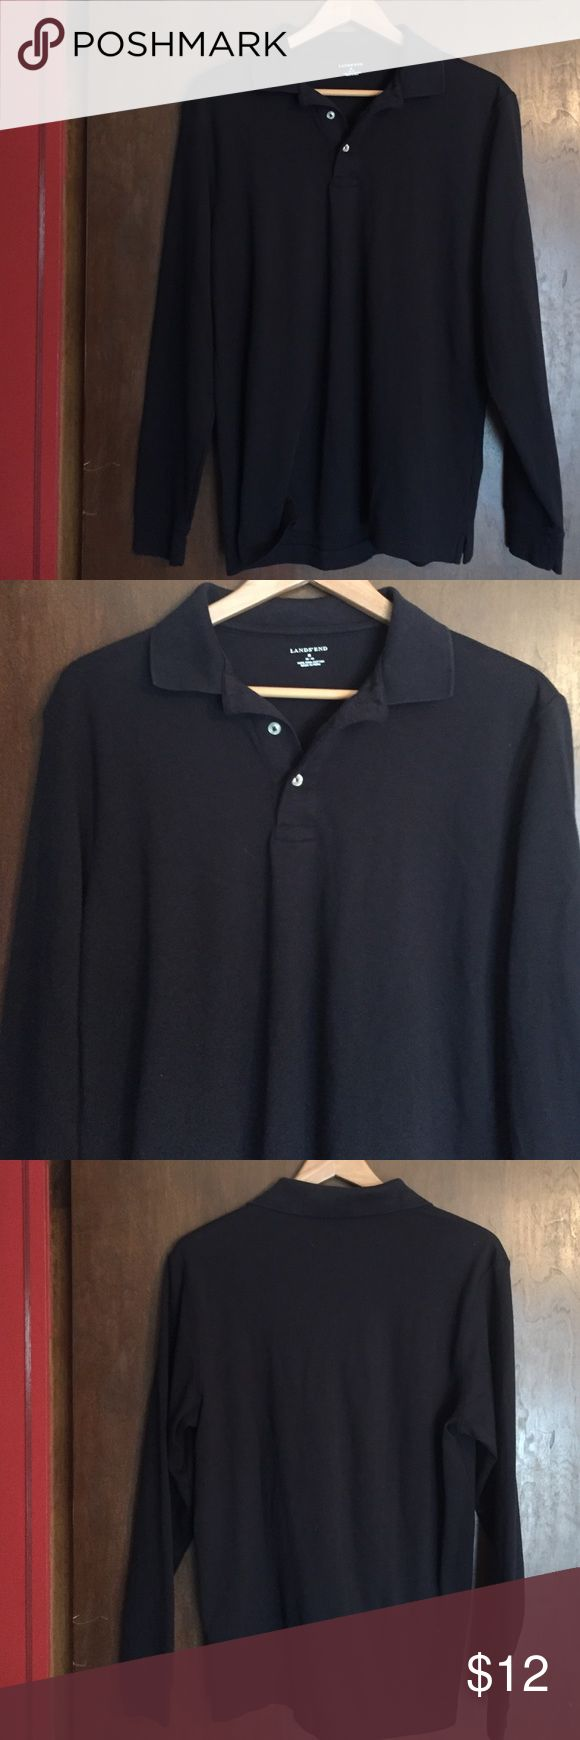 NWOT Lands' End Men's Long Sleeve Polo Shirt New NWOT Lands' End Men's Long Sleeve Polo Shirt New without tags. Navy blue, size M medium 38-40, 100% pima cotton, no defects Lands' End Shirts Polos